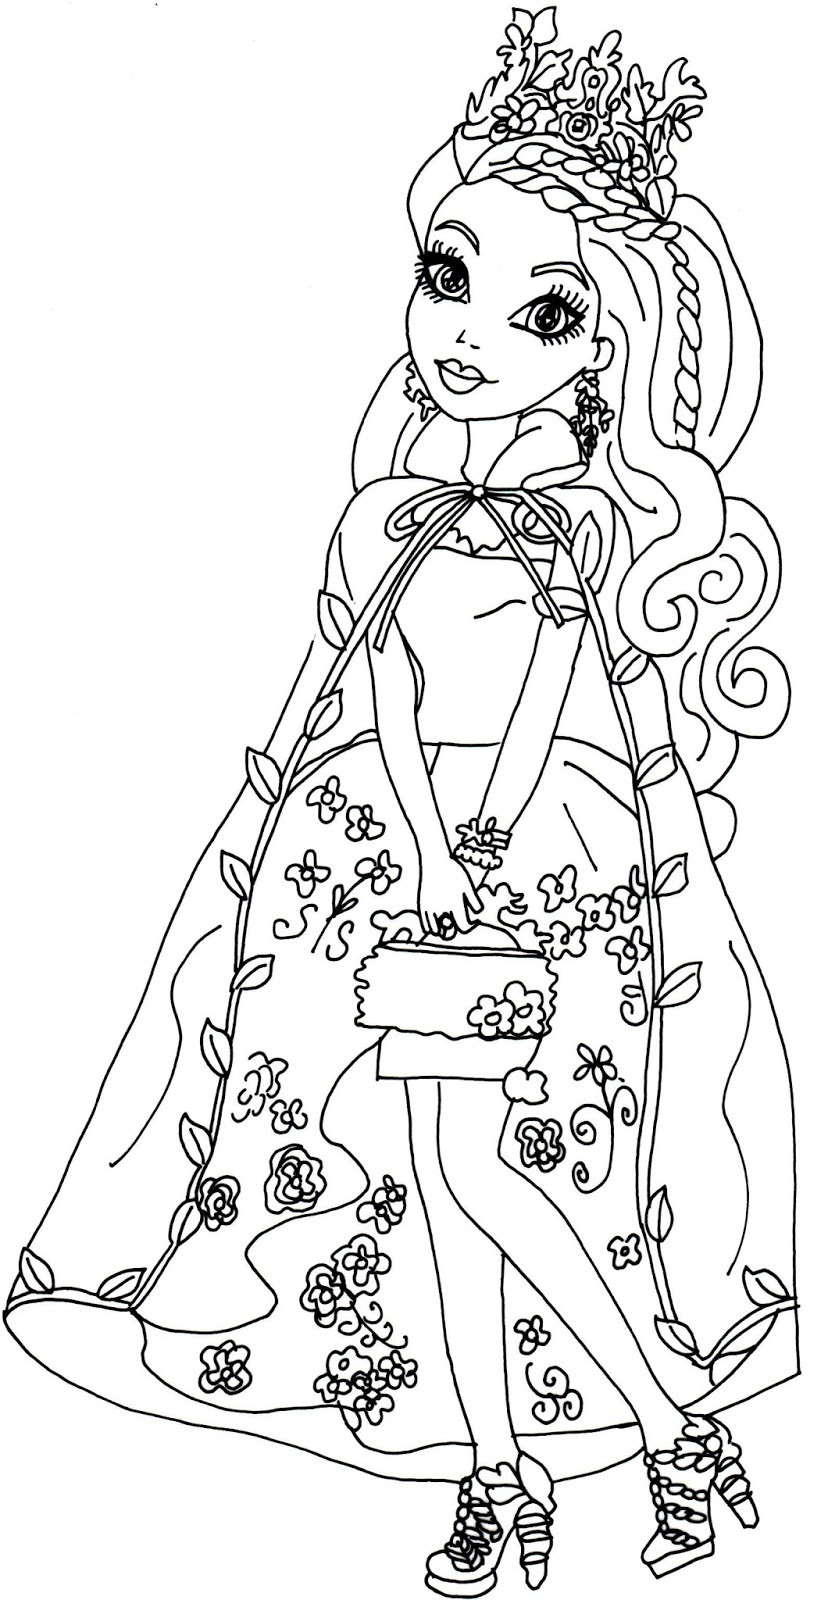 Free Coloring Sheets For Toddlers  Ever After High Coloring Pages Best Coloring Pages For Kids